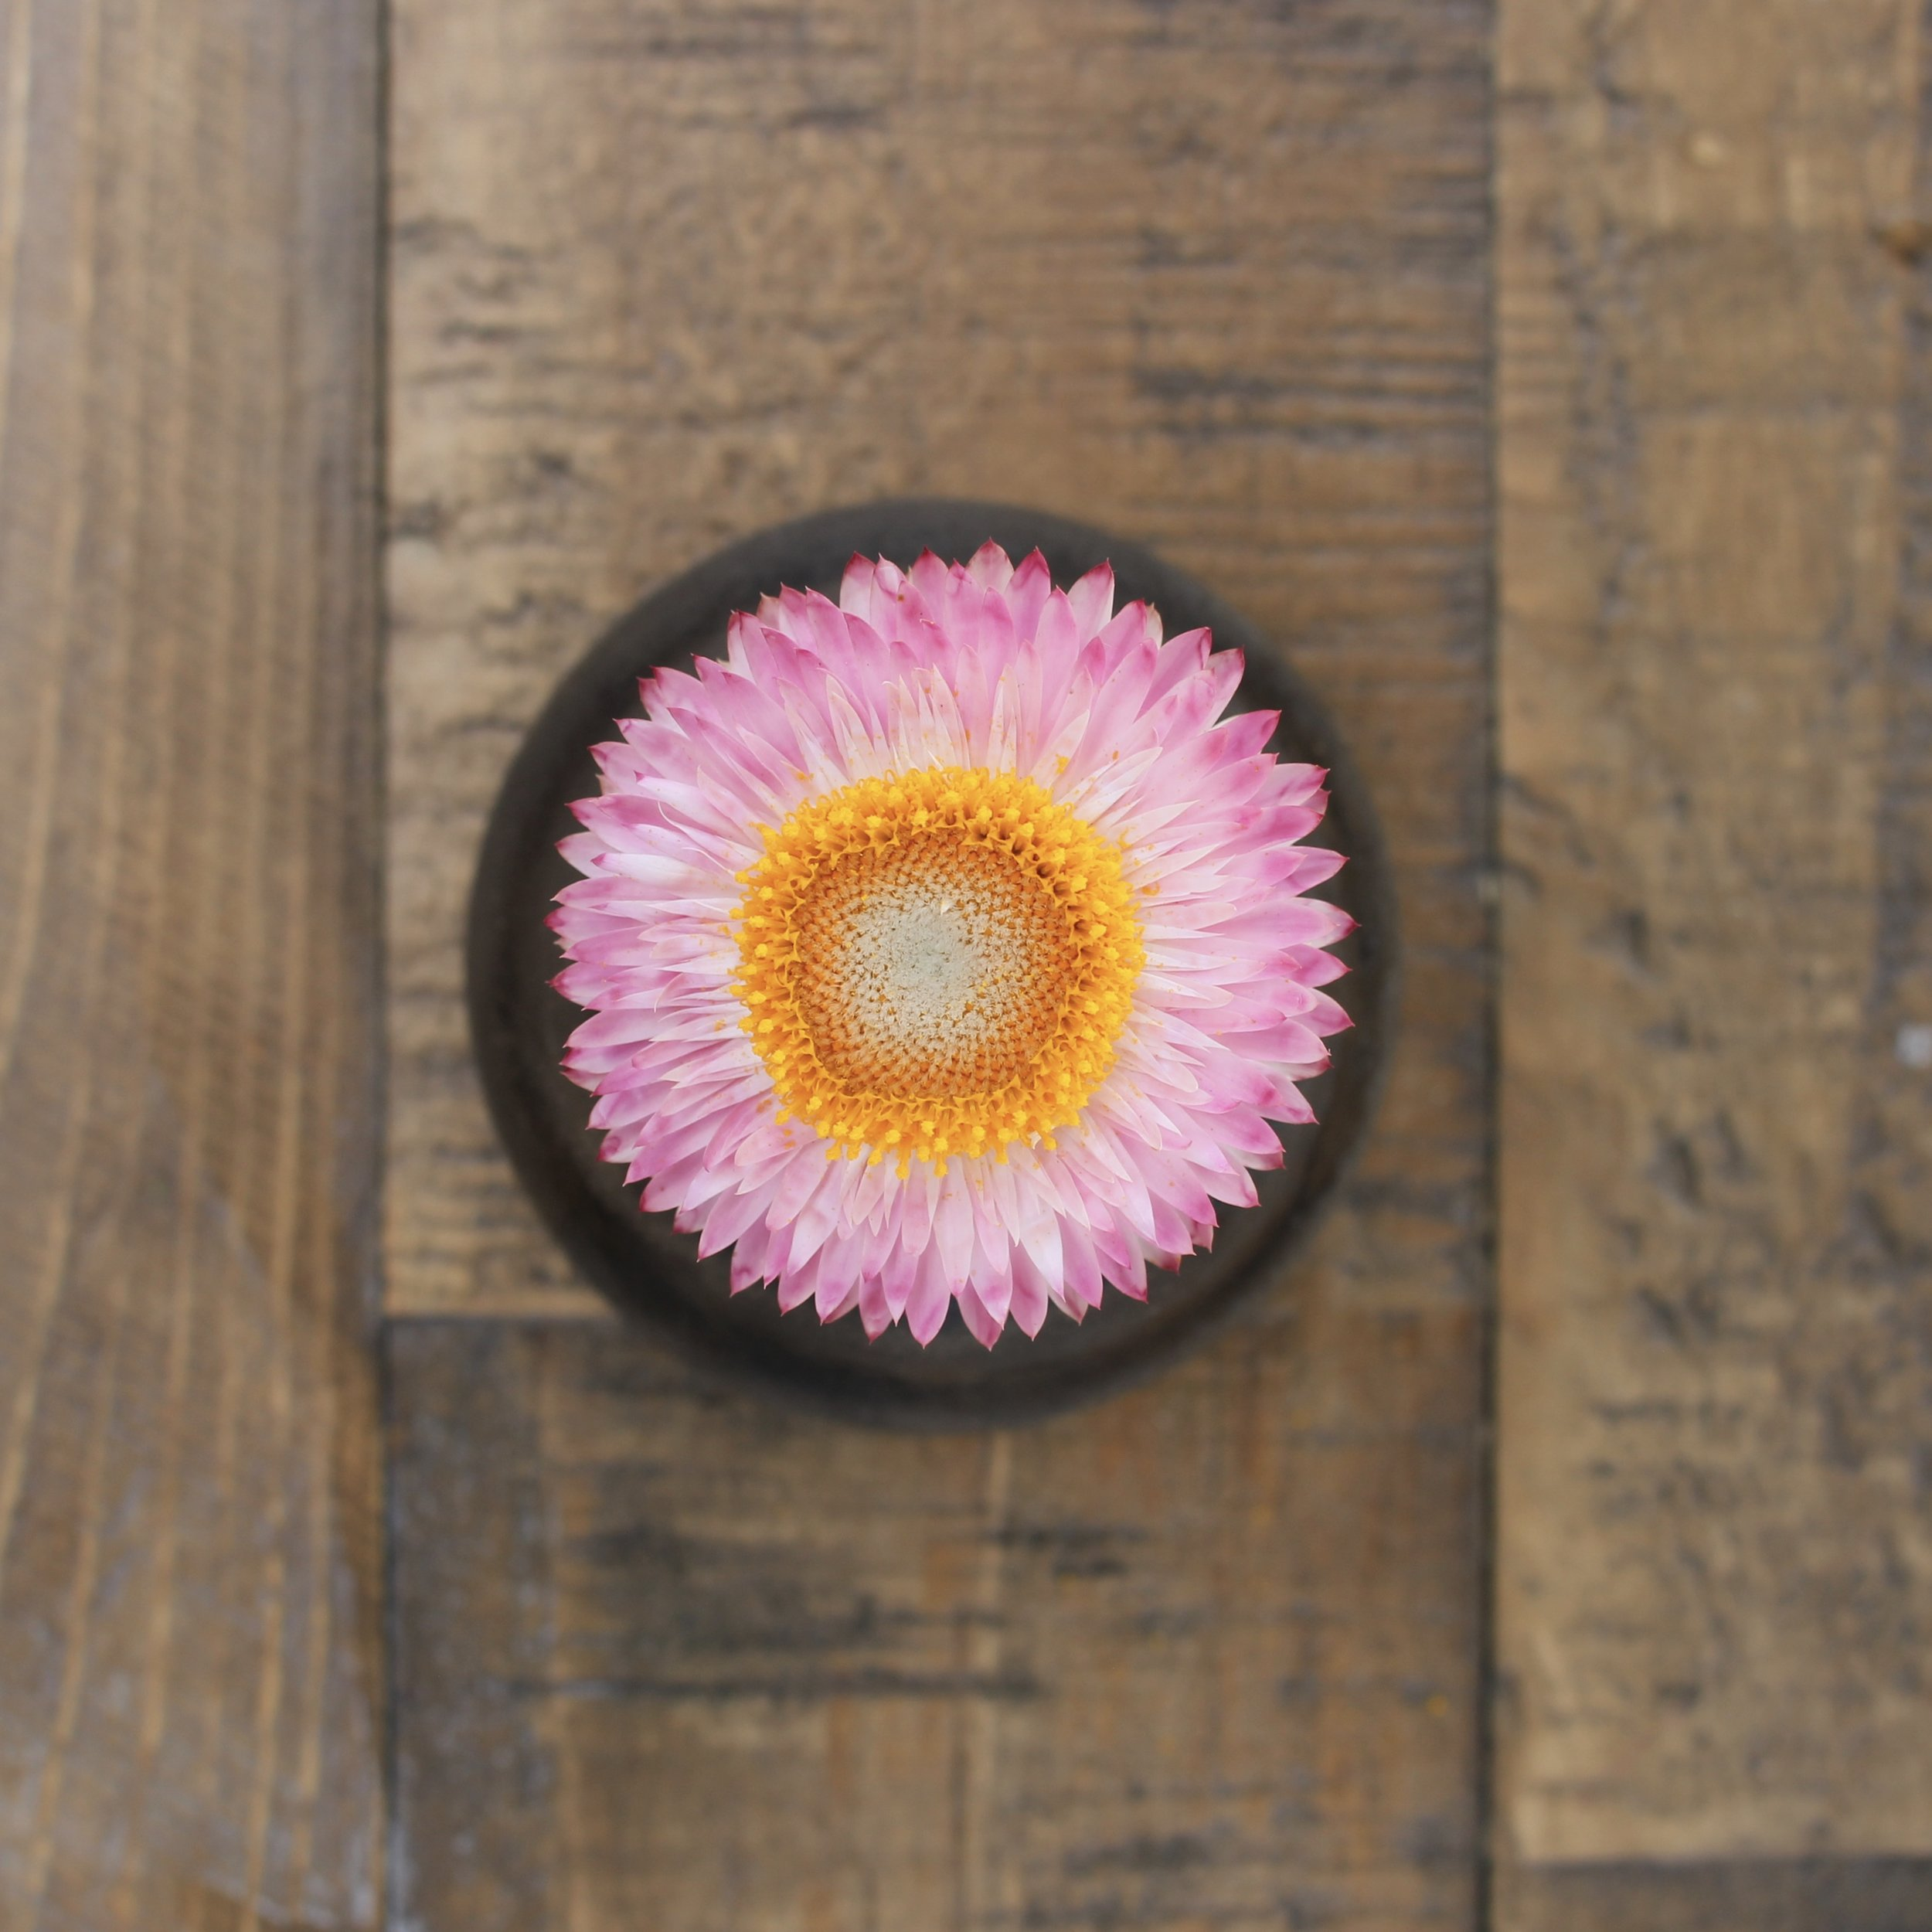 Strawflower, silvery rose - Now available